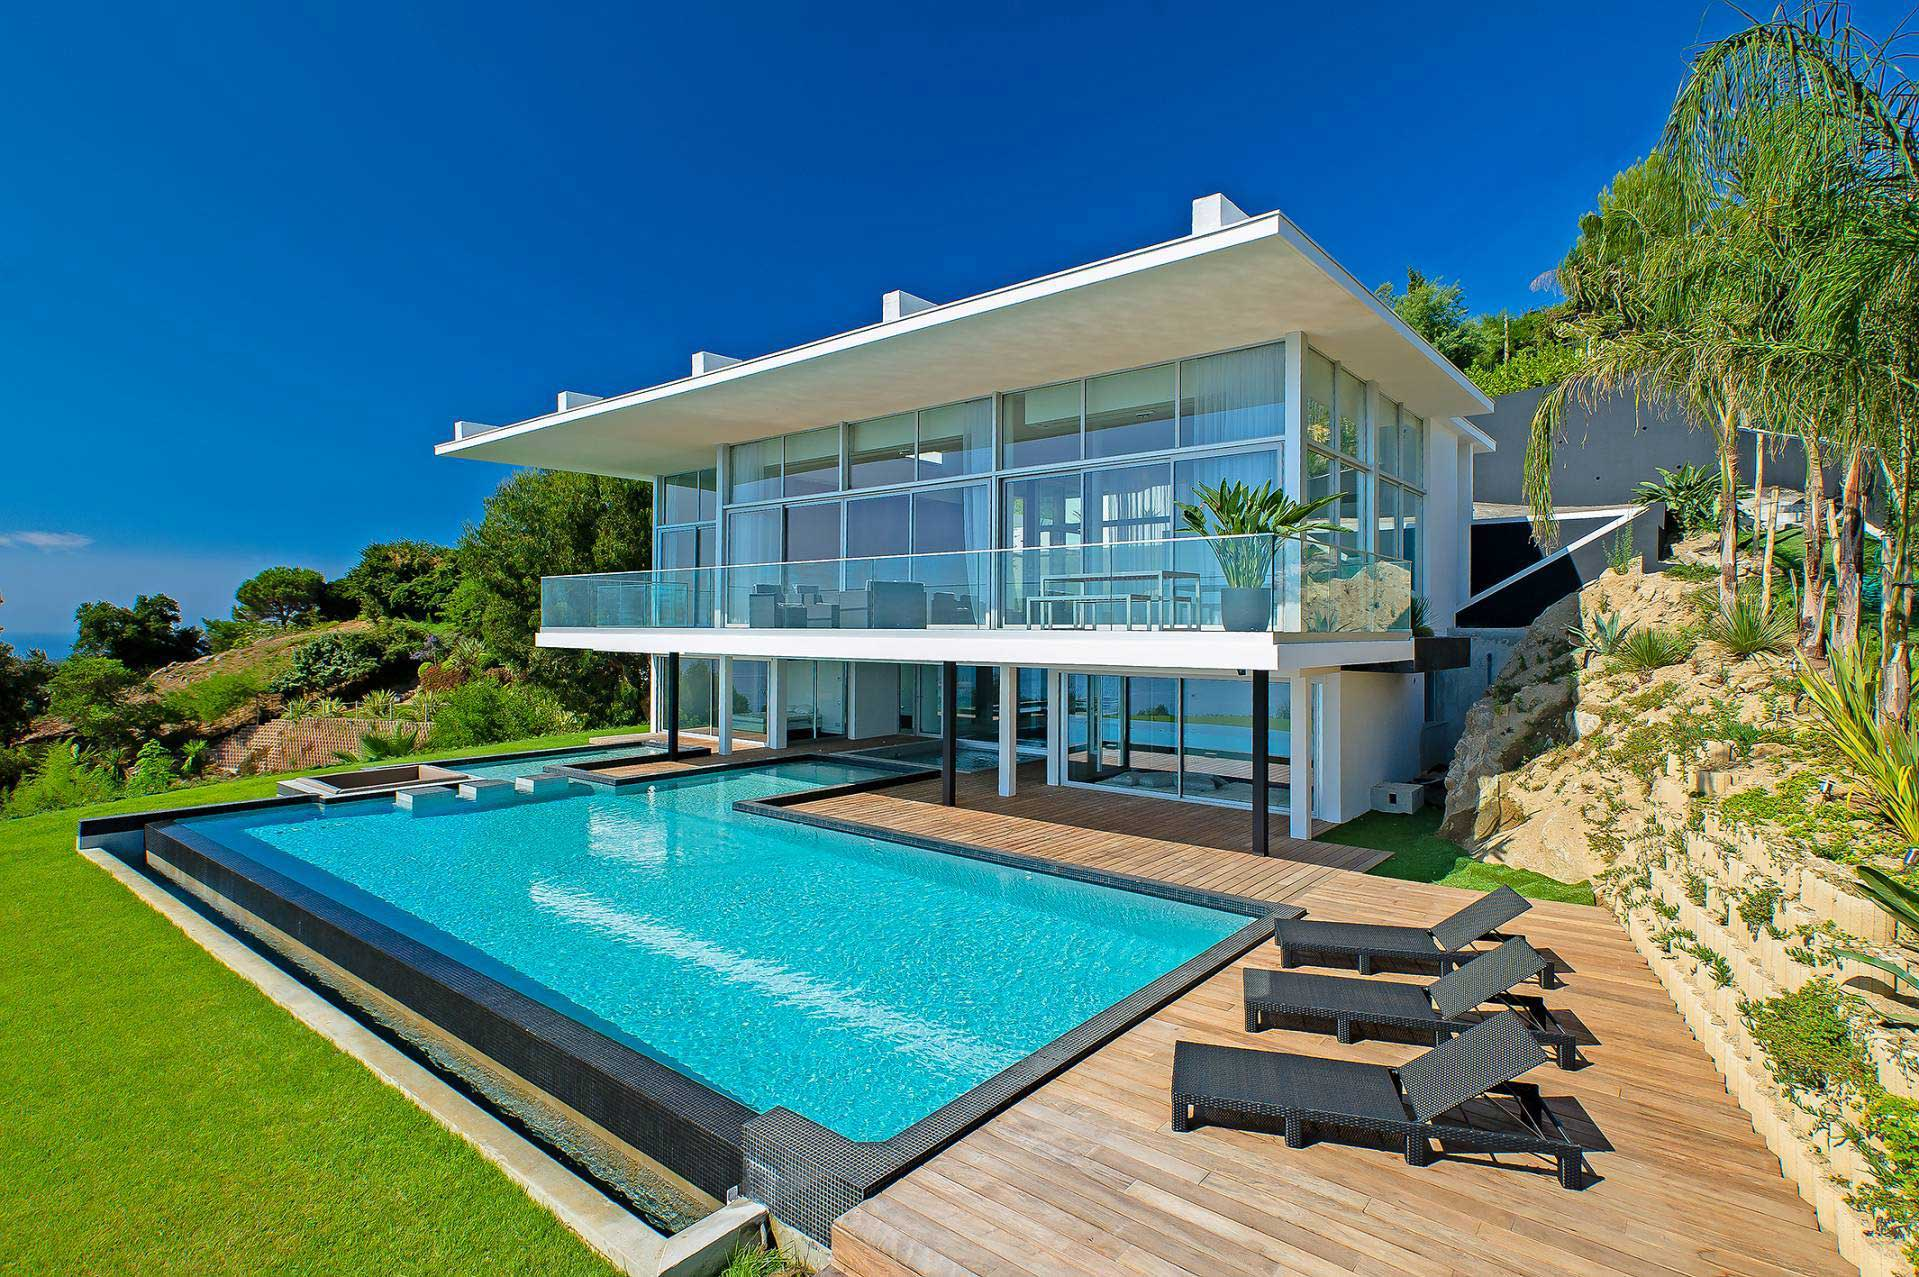 Villa contemporaine avec piscine saint tropez for Villa avec piscine interieure